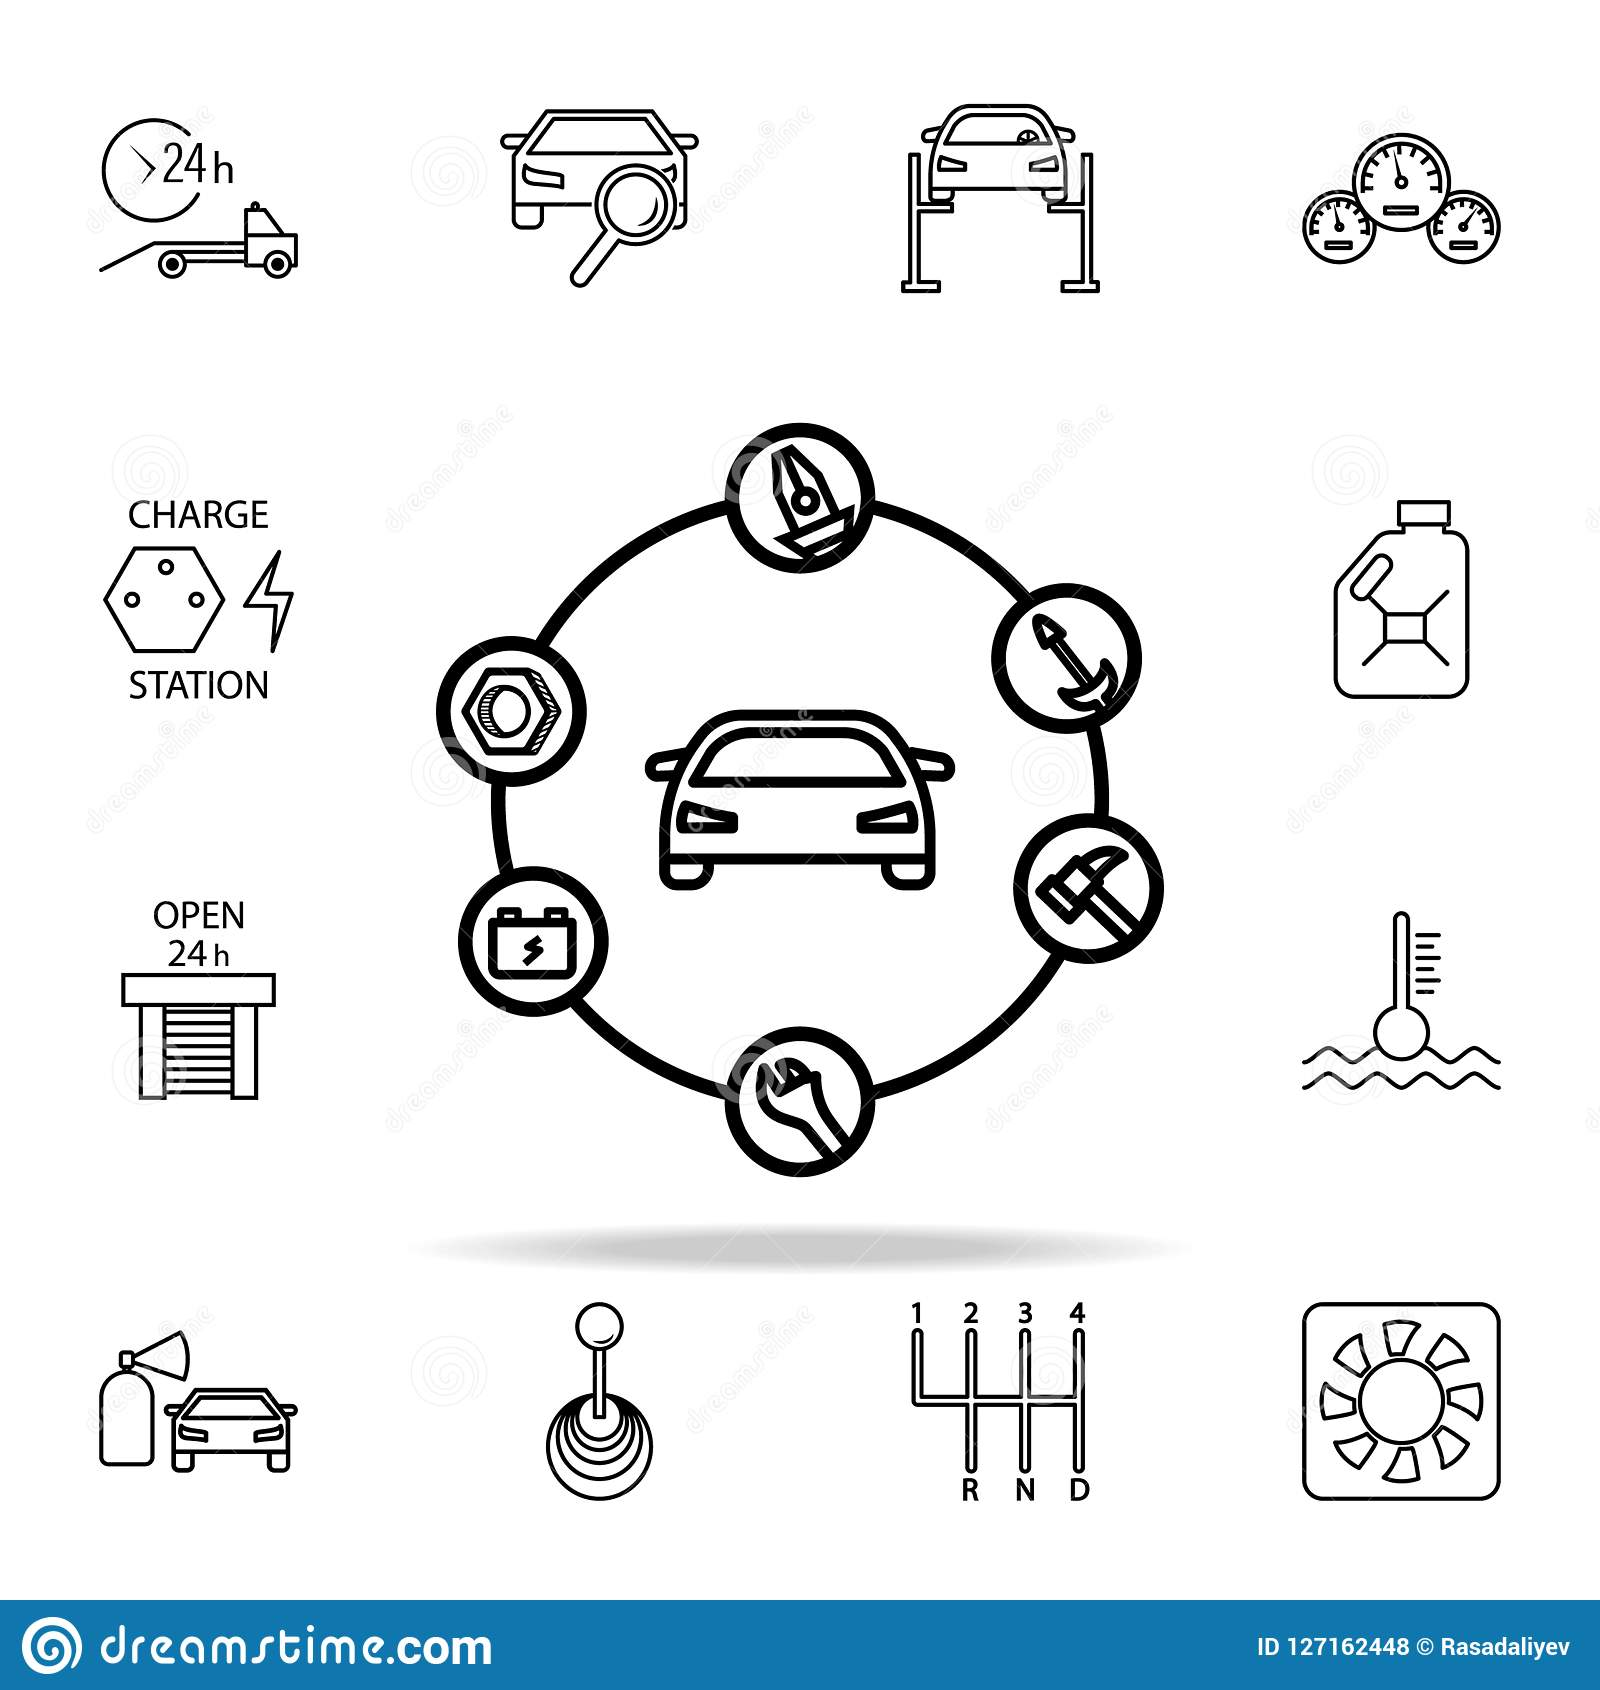 icon car diagram wiring diagram Network Diagram Icons car searching problem icon cars service and repair parts iconscar searching problem icon cars service and